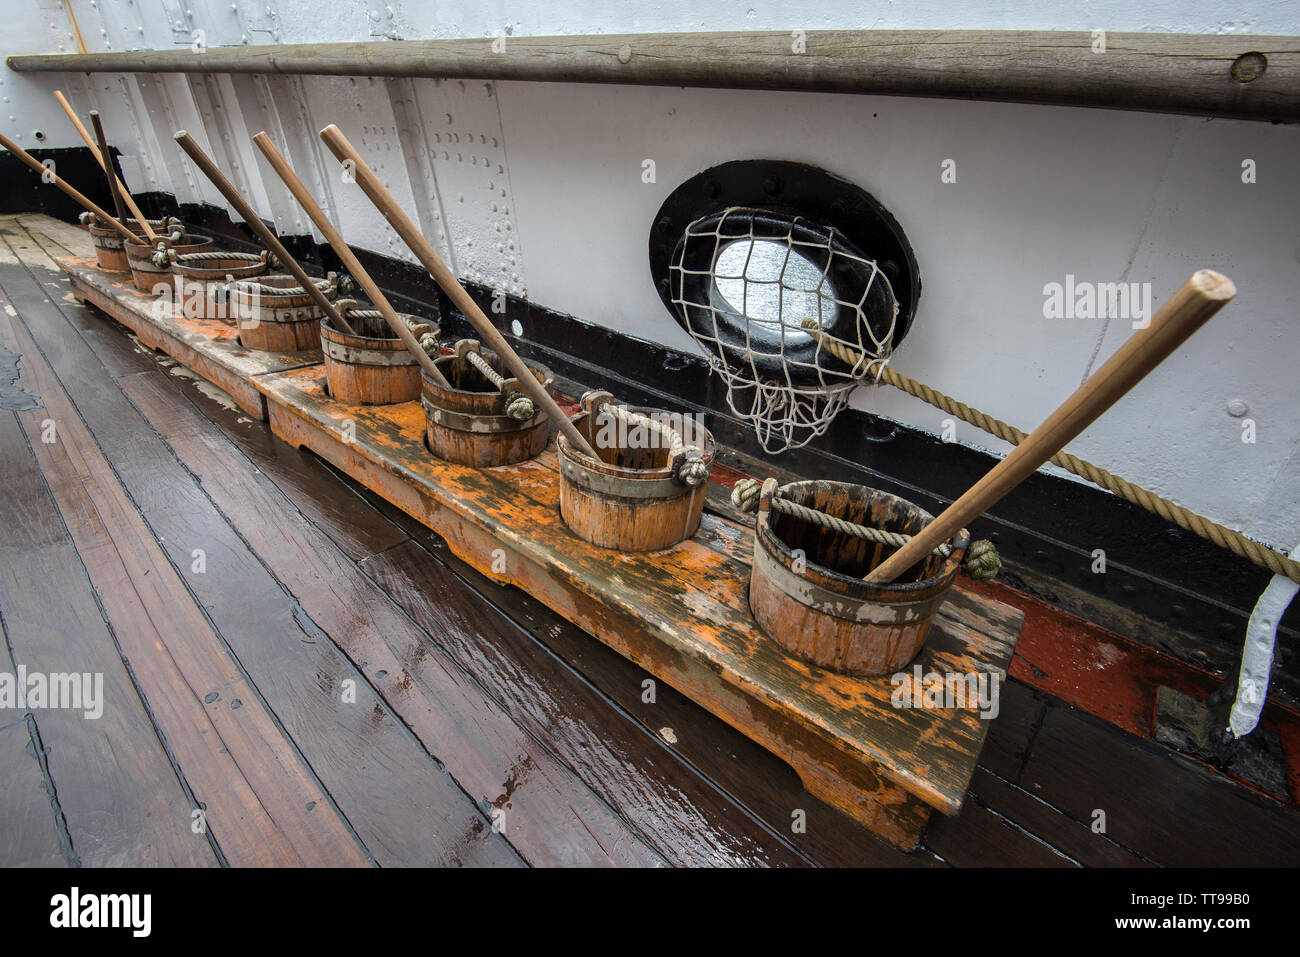 Deck scrubbing Glenlee tall ship - Stock Image